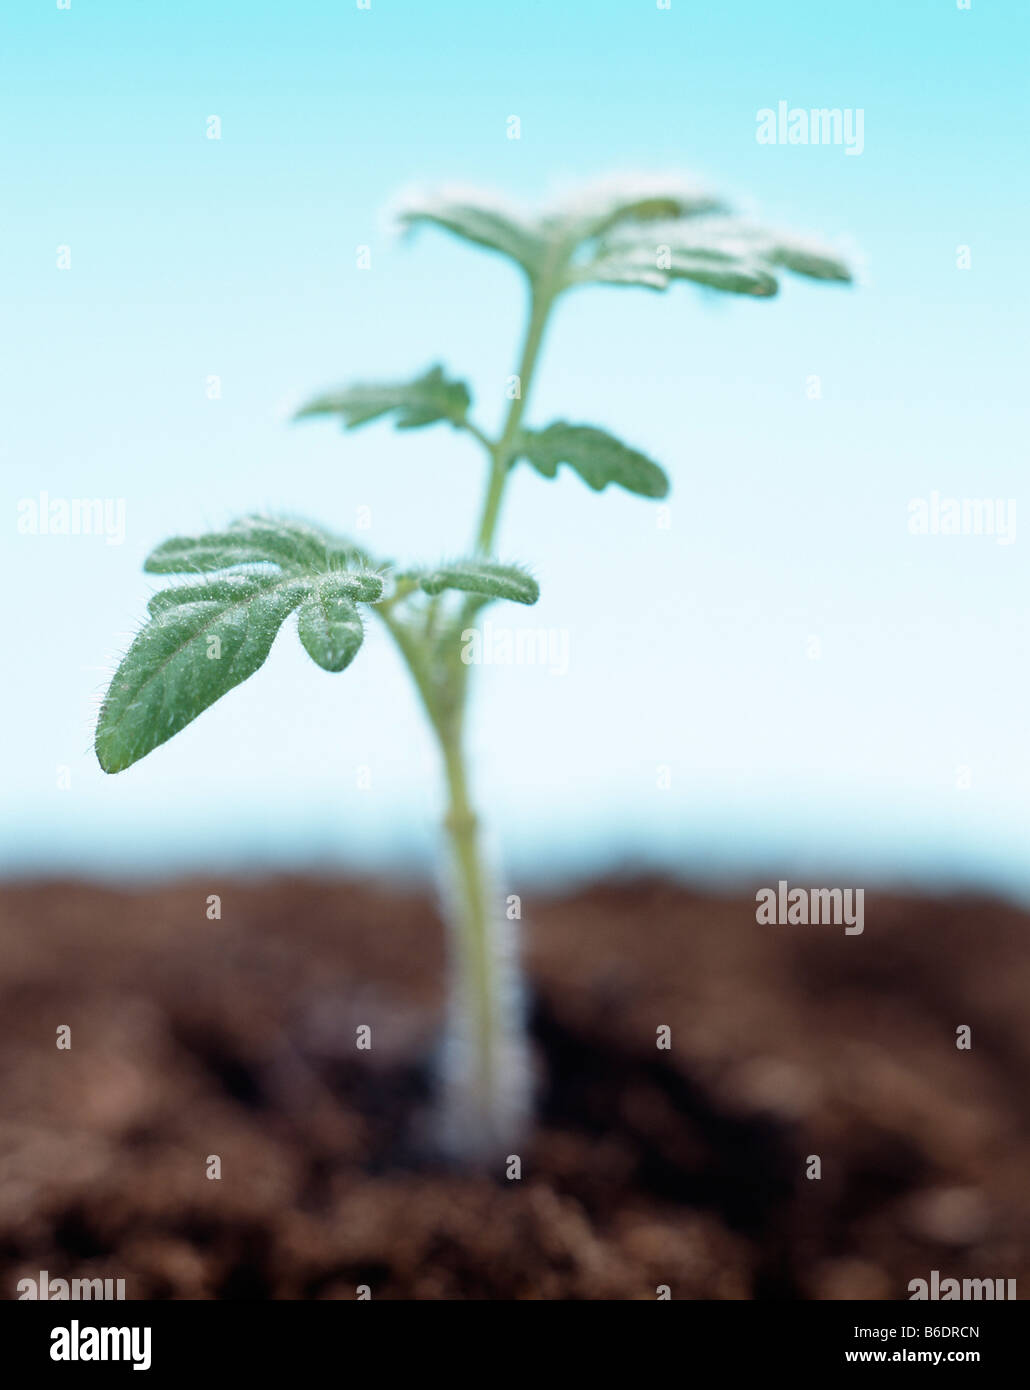 Plant Trichome Stock Photos & Plant Trichome Stock Images - Alamy